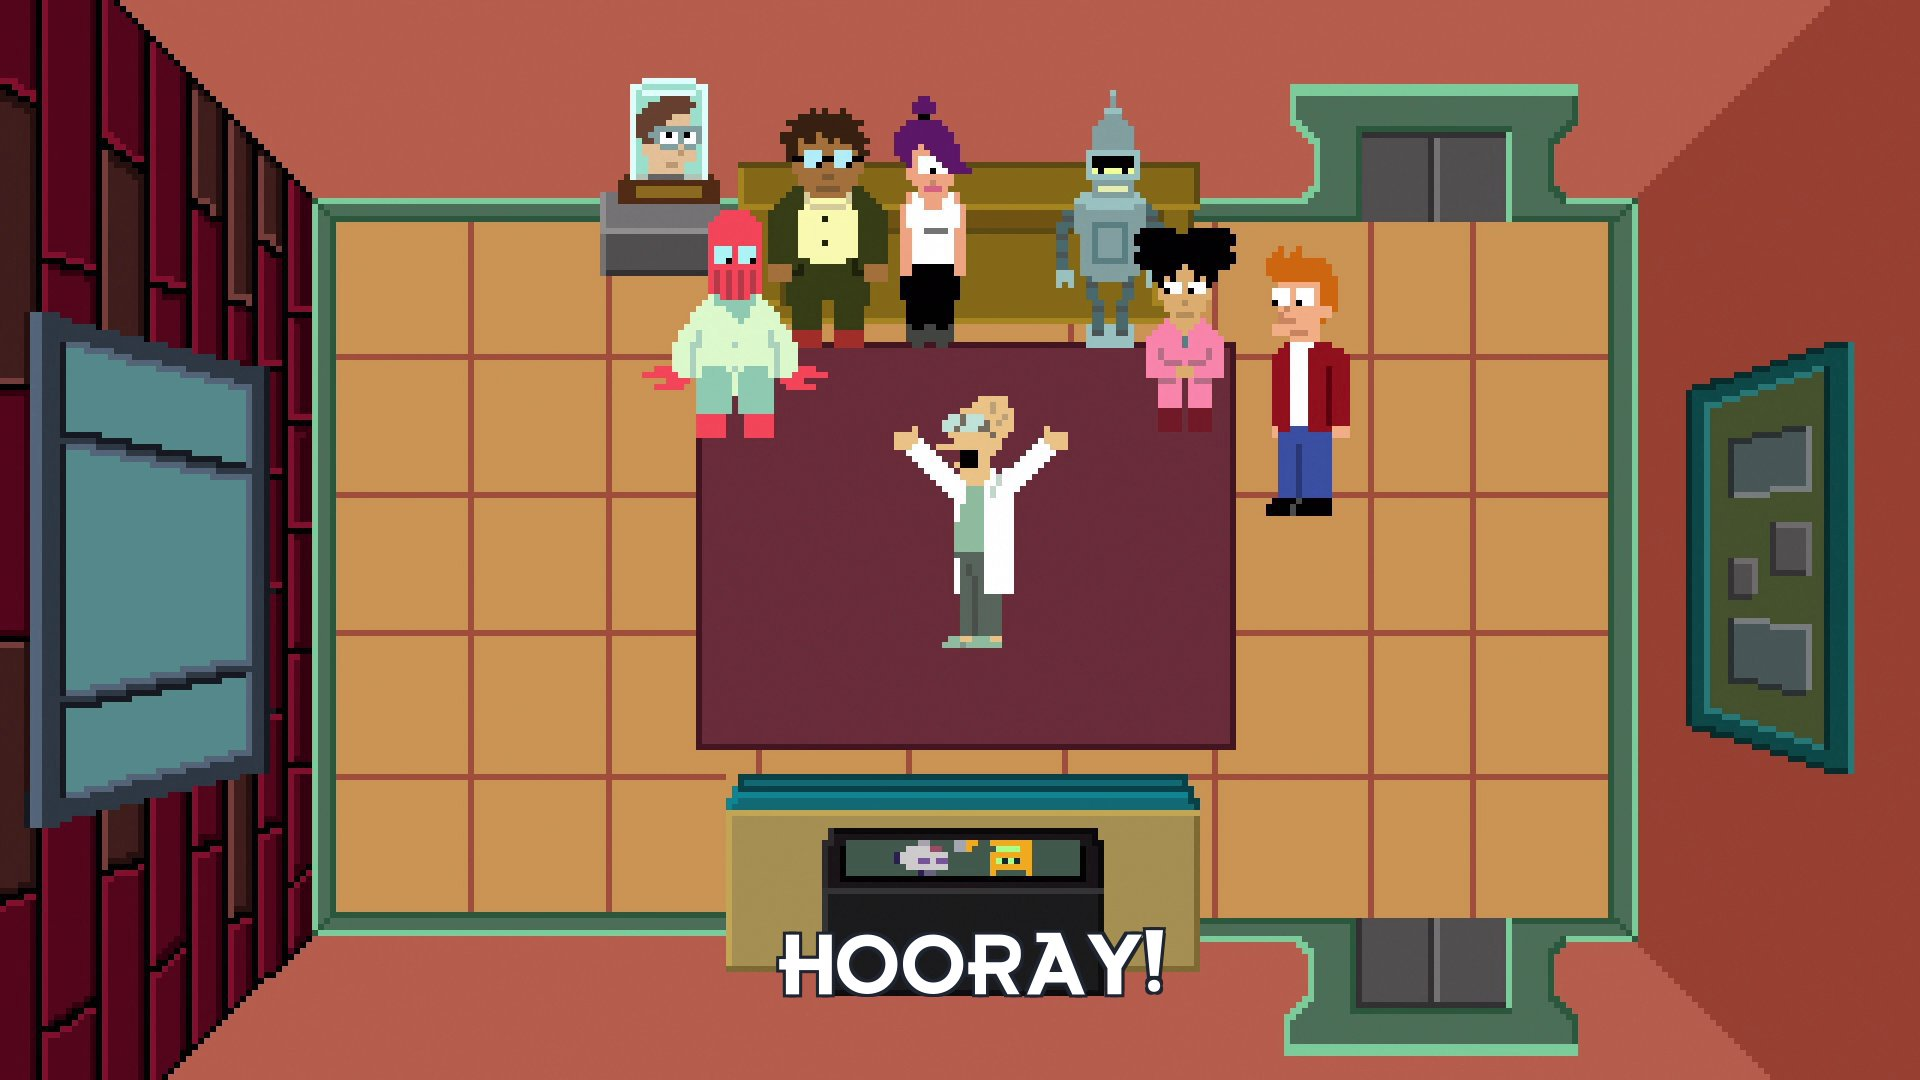 Prof Hubert J Farnsworth: Hooray!